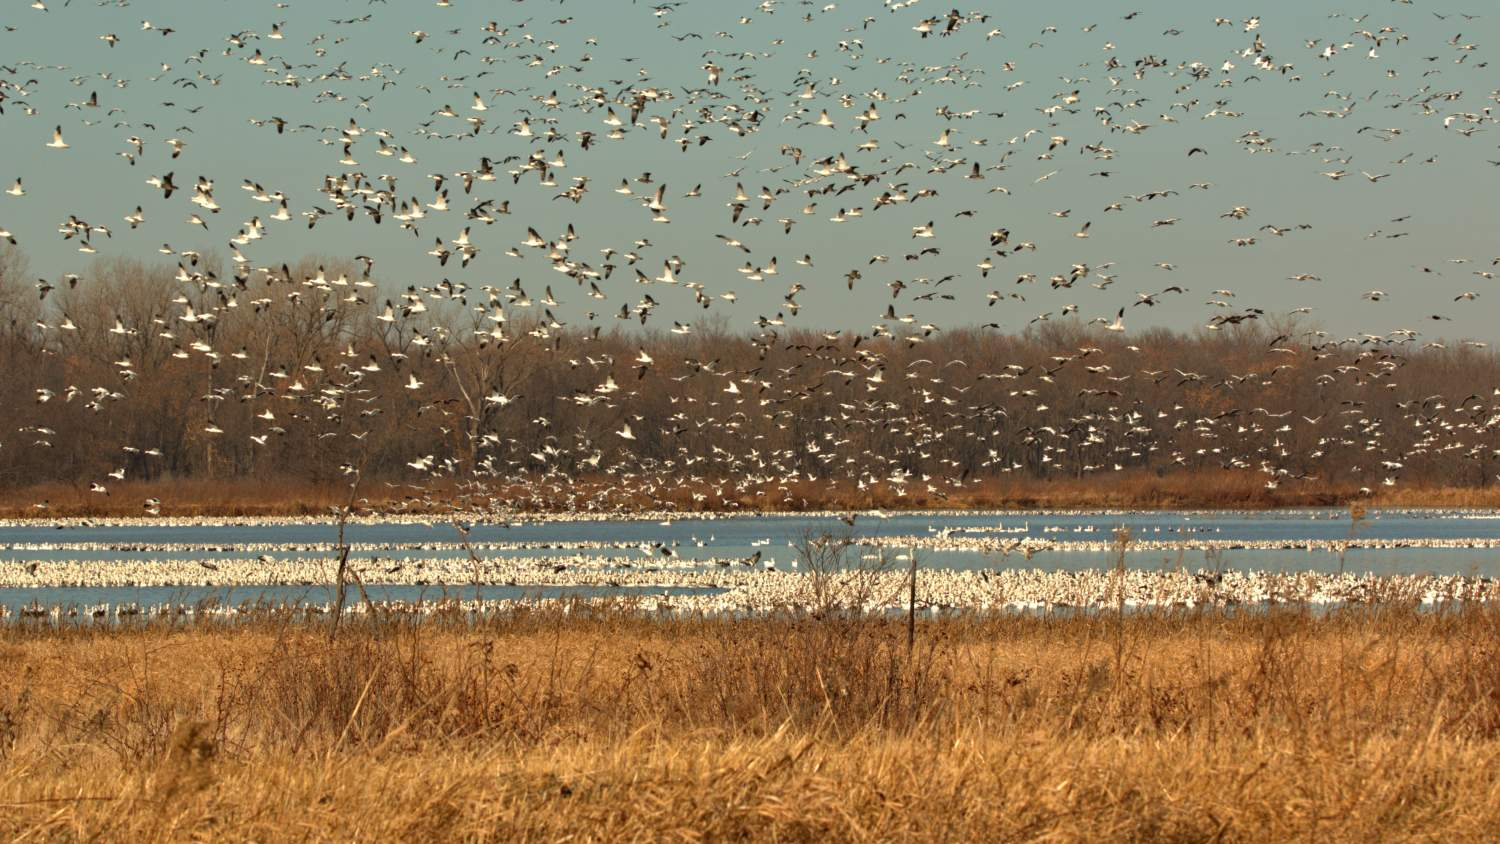 Birds flying in the winter at a marsh